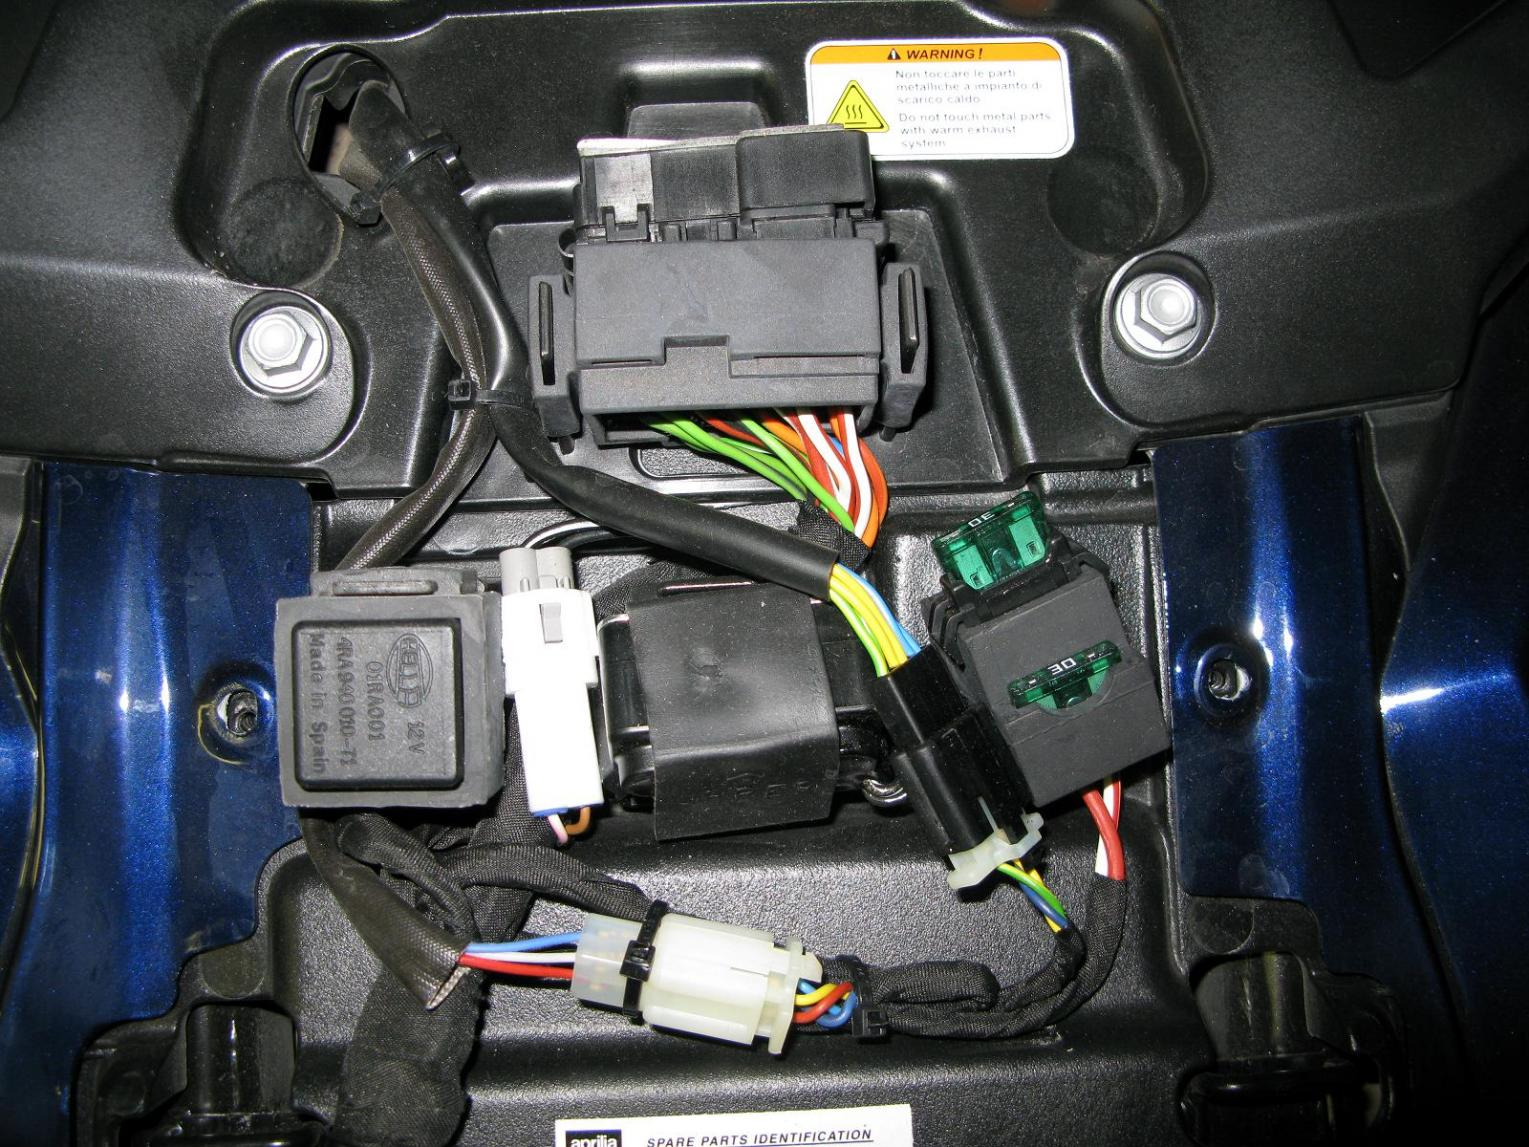 [DIAGRAM_38IU]  Relay/Fuses location picture needed | Aprilia Fuse Box |  | Aprilia Forum